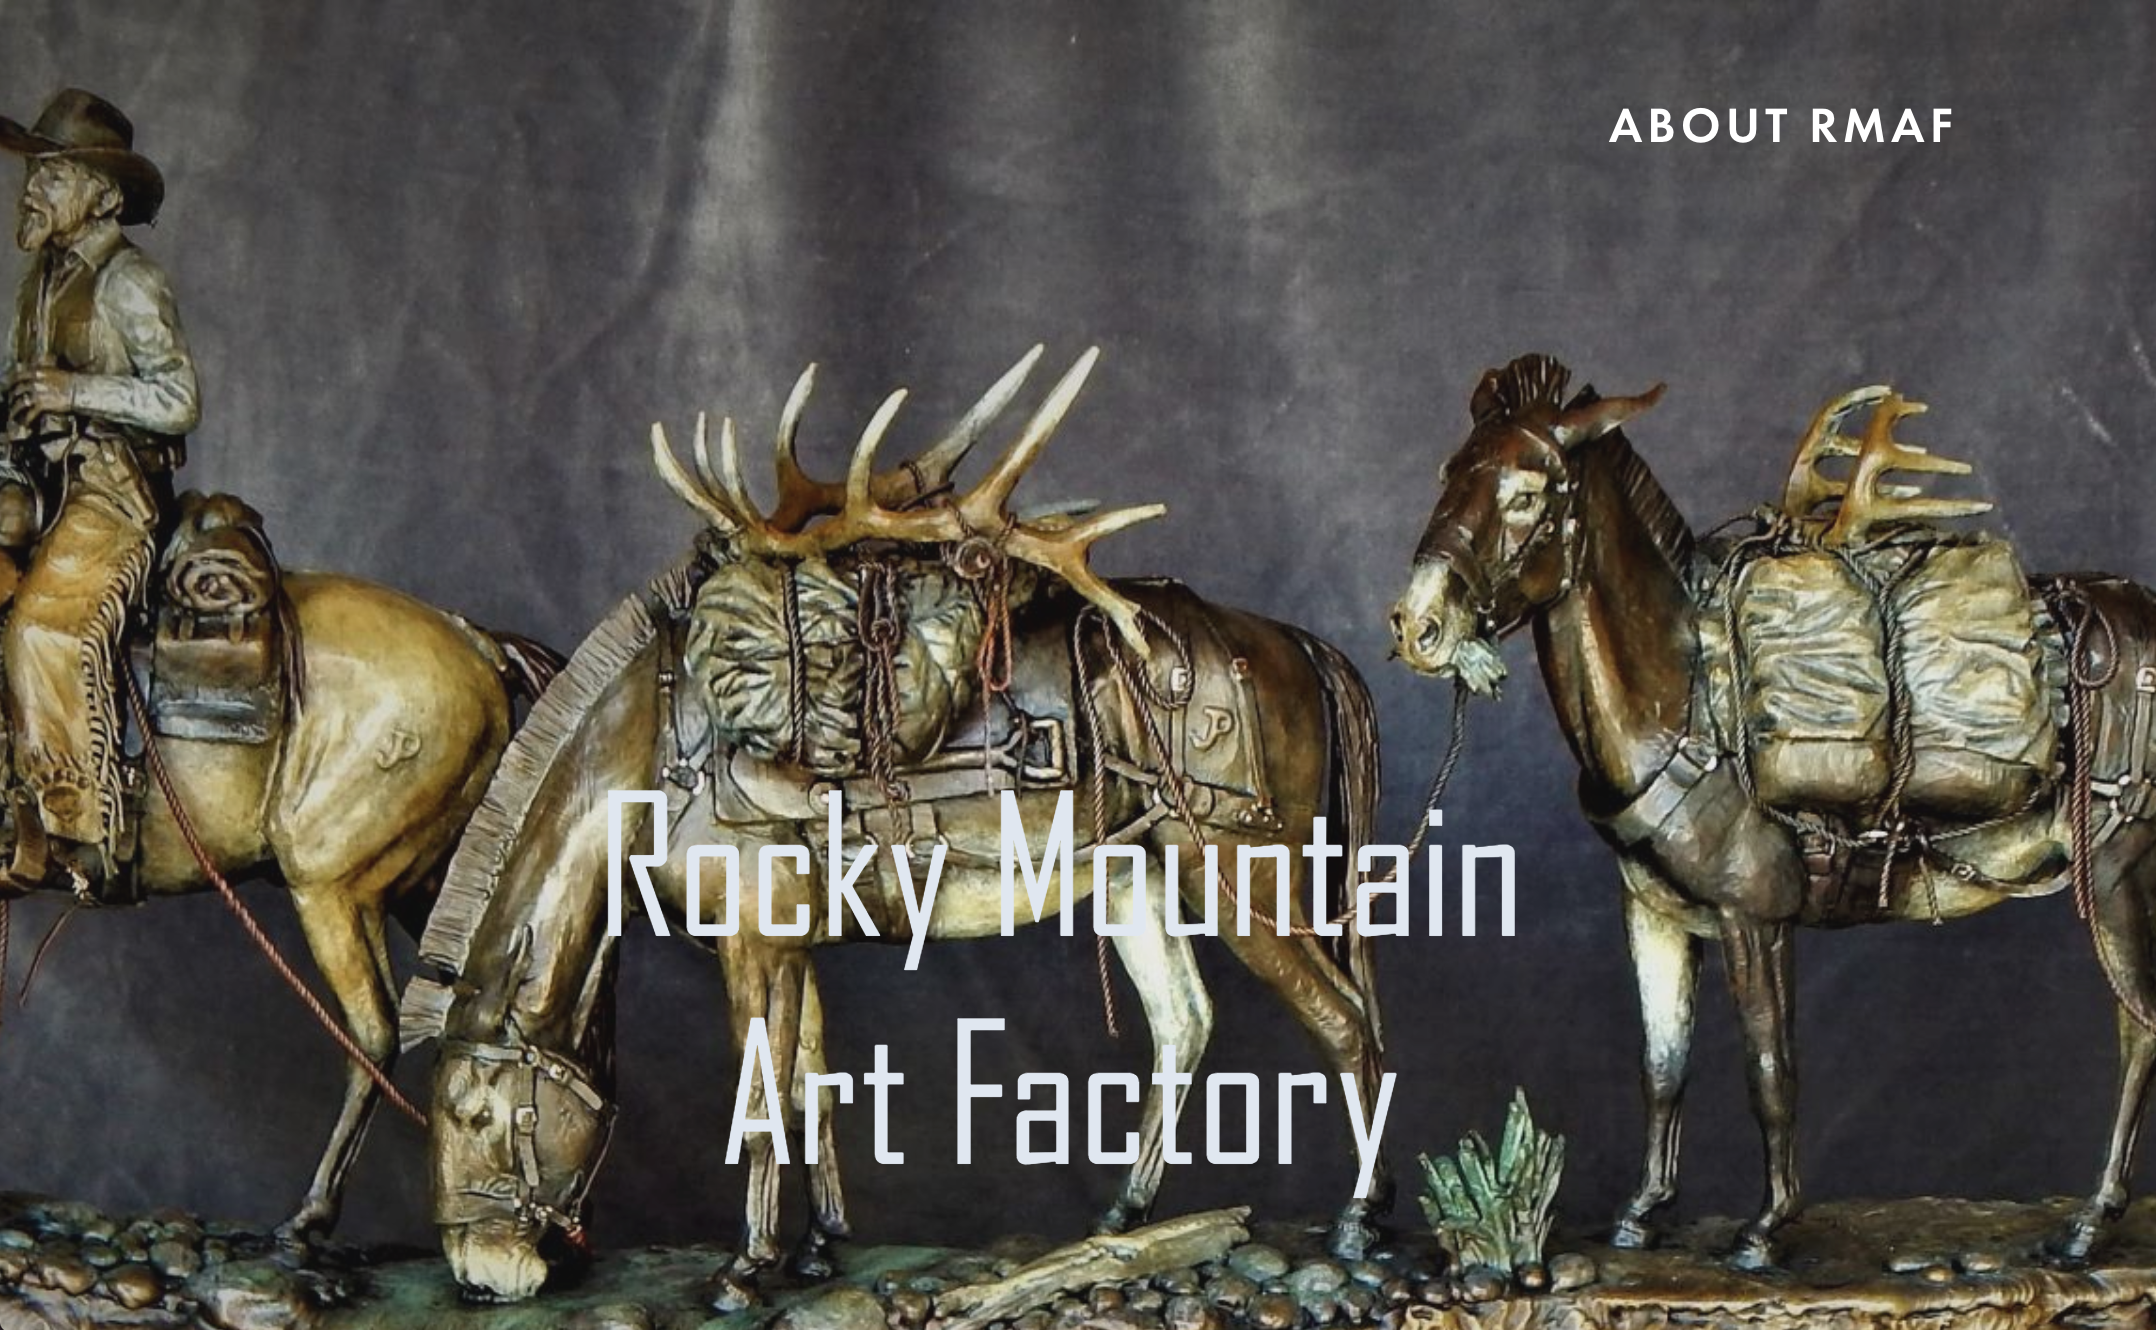 rockymountainartfactory.com - John Pettis and Scott Rand work to craft art that inspires. together, they honor the masters of fine art.